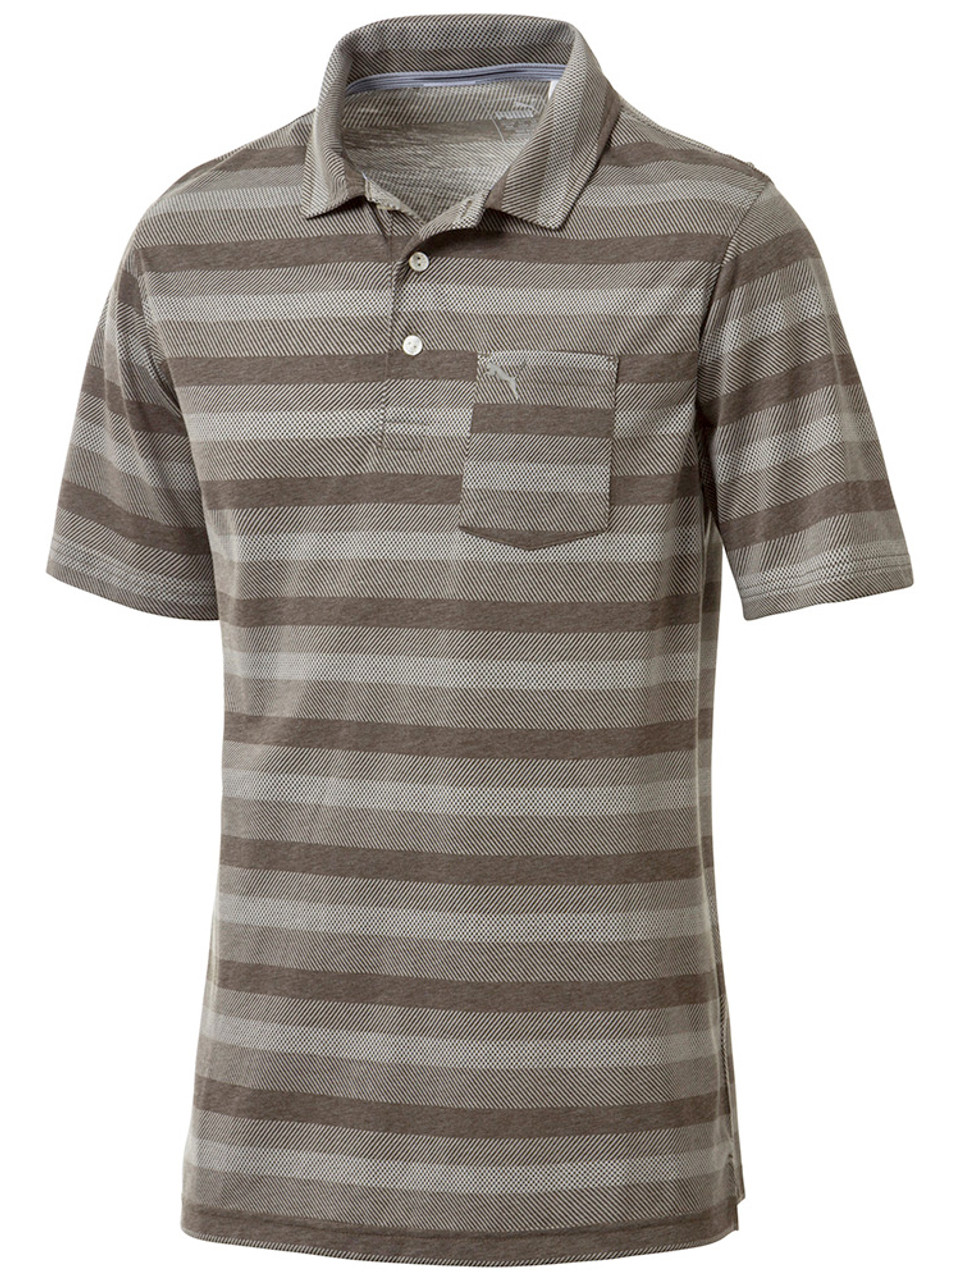 907f7662d977 Puma Local Pro Polo - Forest Night - Mens For Sale